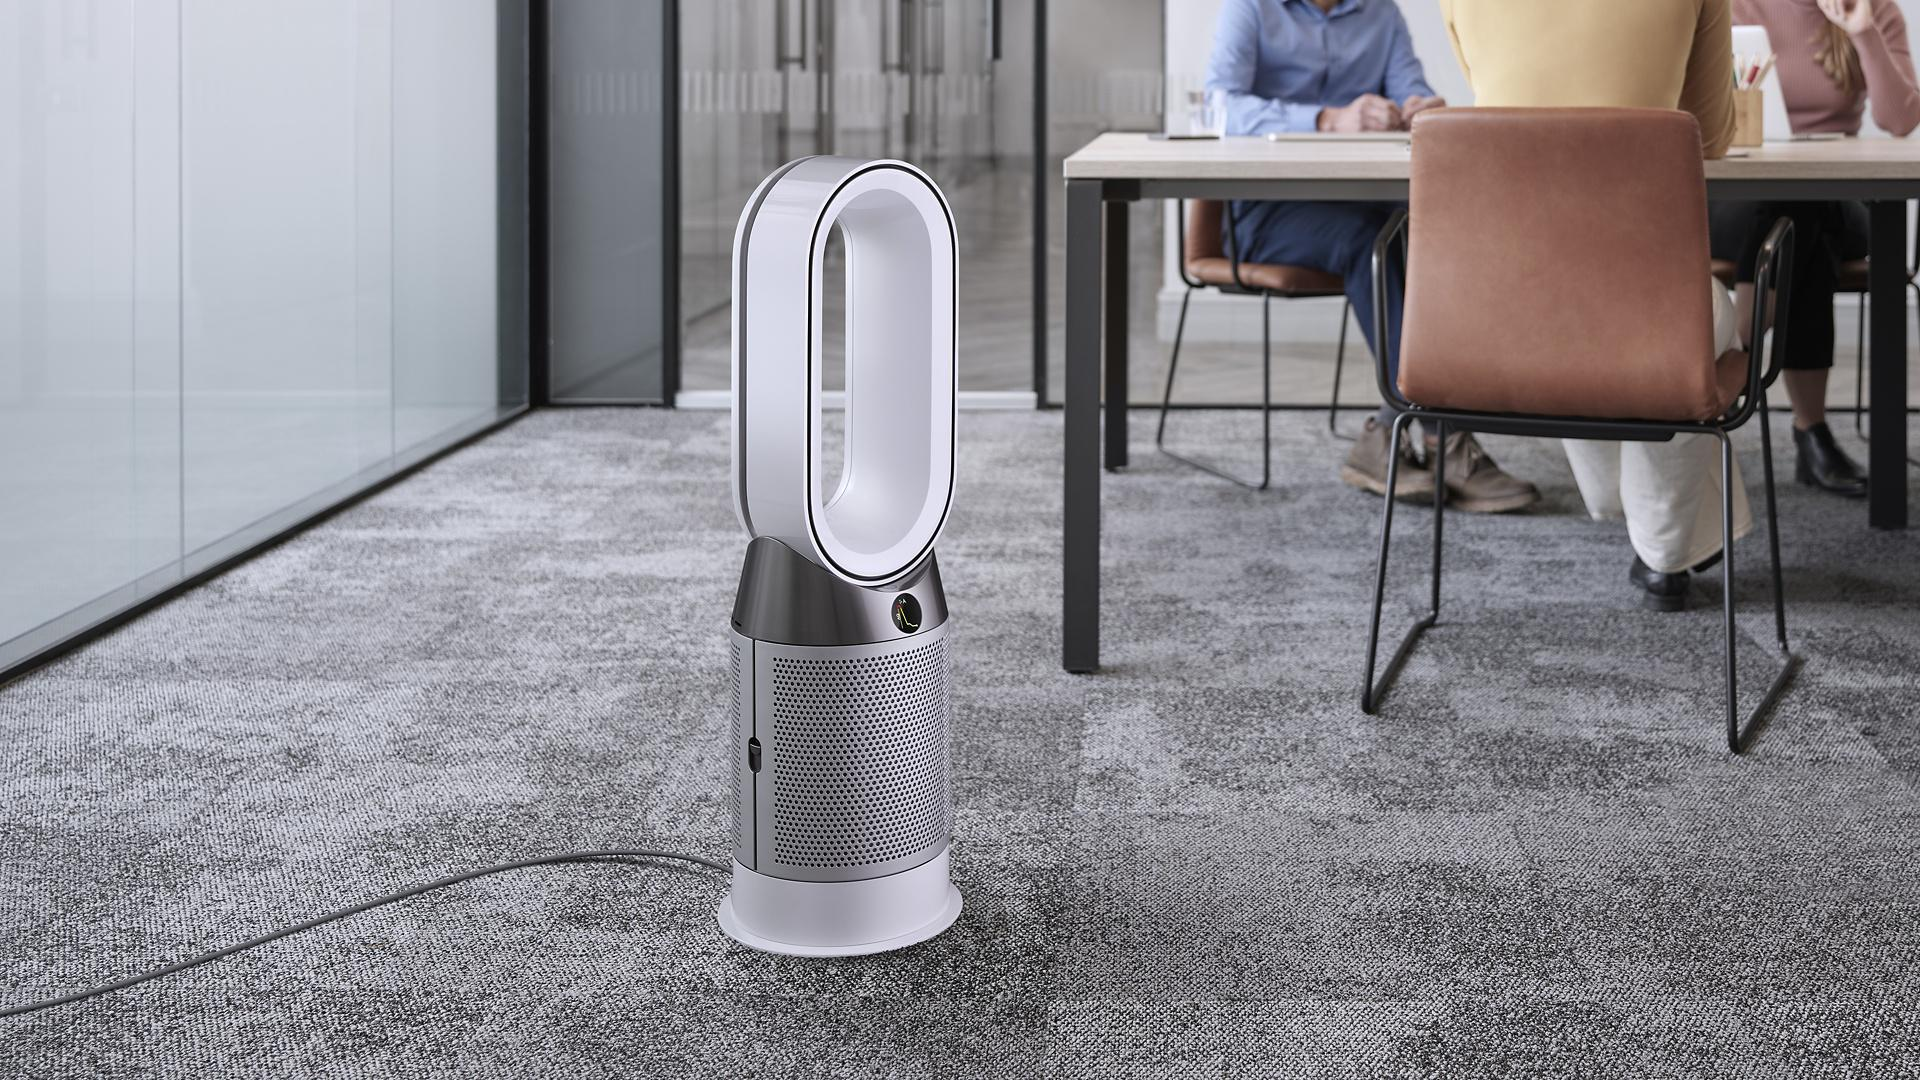 صورة لجهاز Dyson Pure Hot+Cool في بيئة تجارية